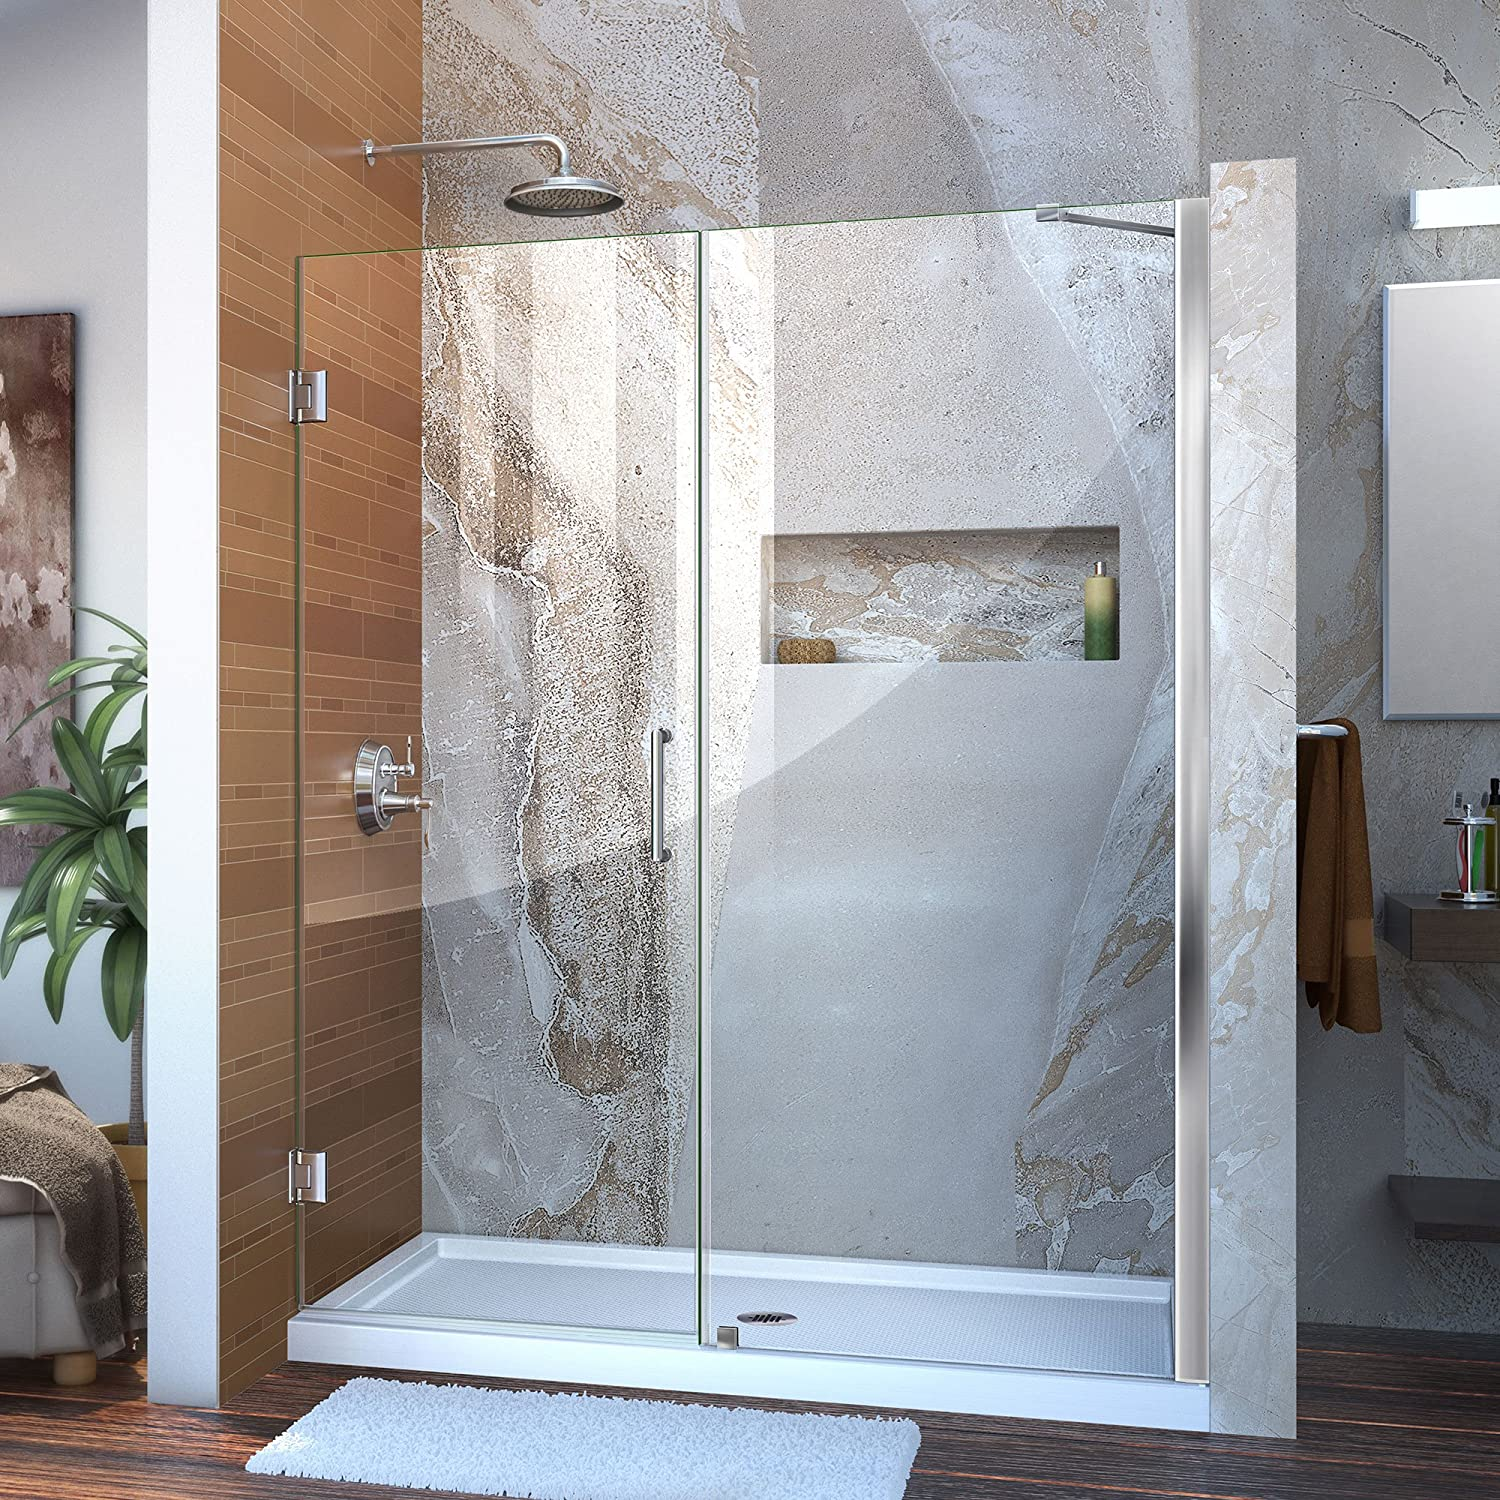 DreamLine Unidoor 57-58 in. W x 72 in. H Frameless Hinged Shower Door with Support Arm in Chrome, SHDR-20577210-01